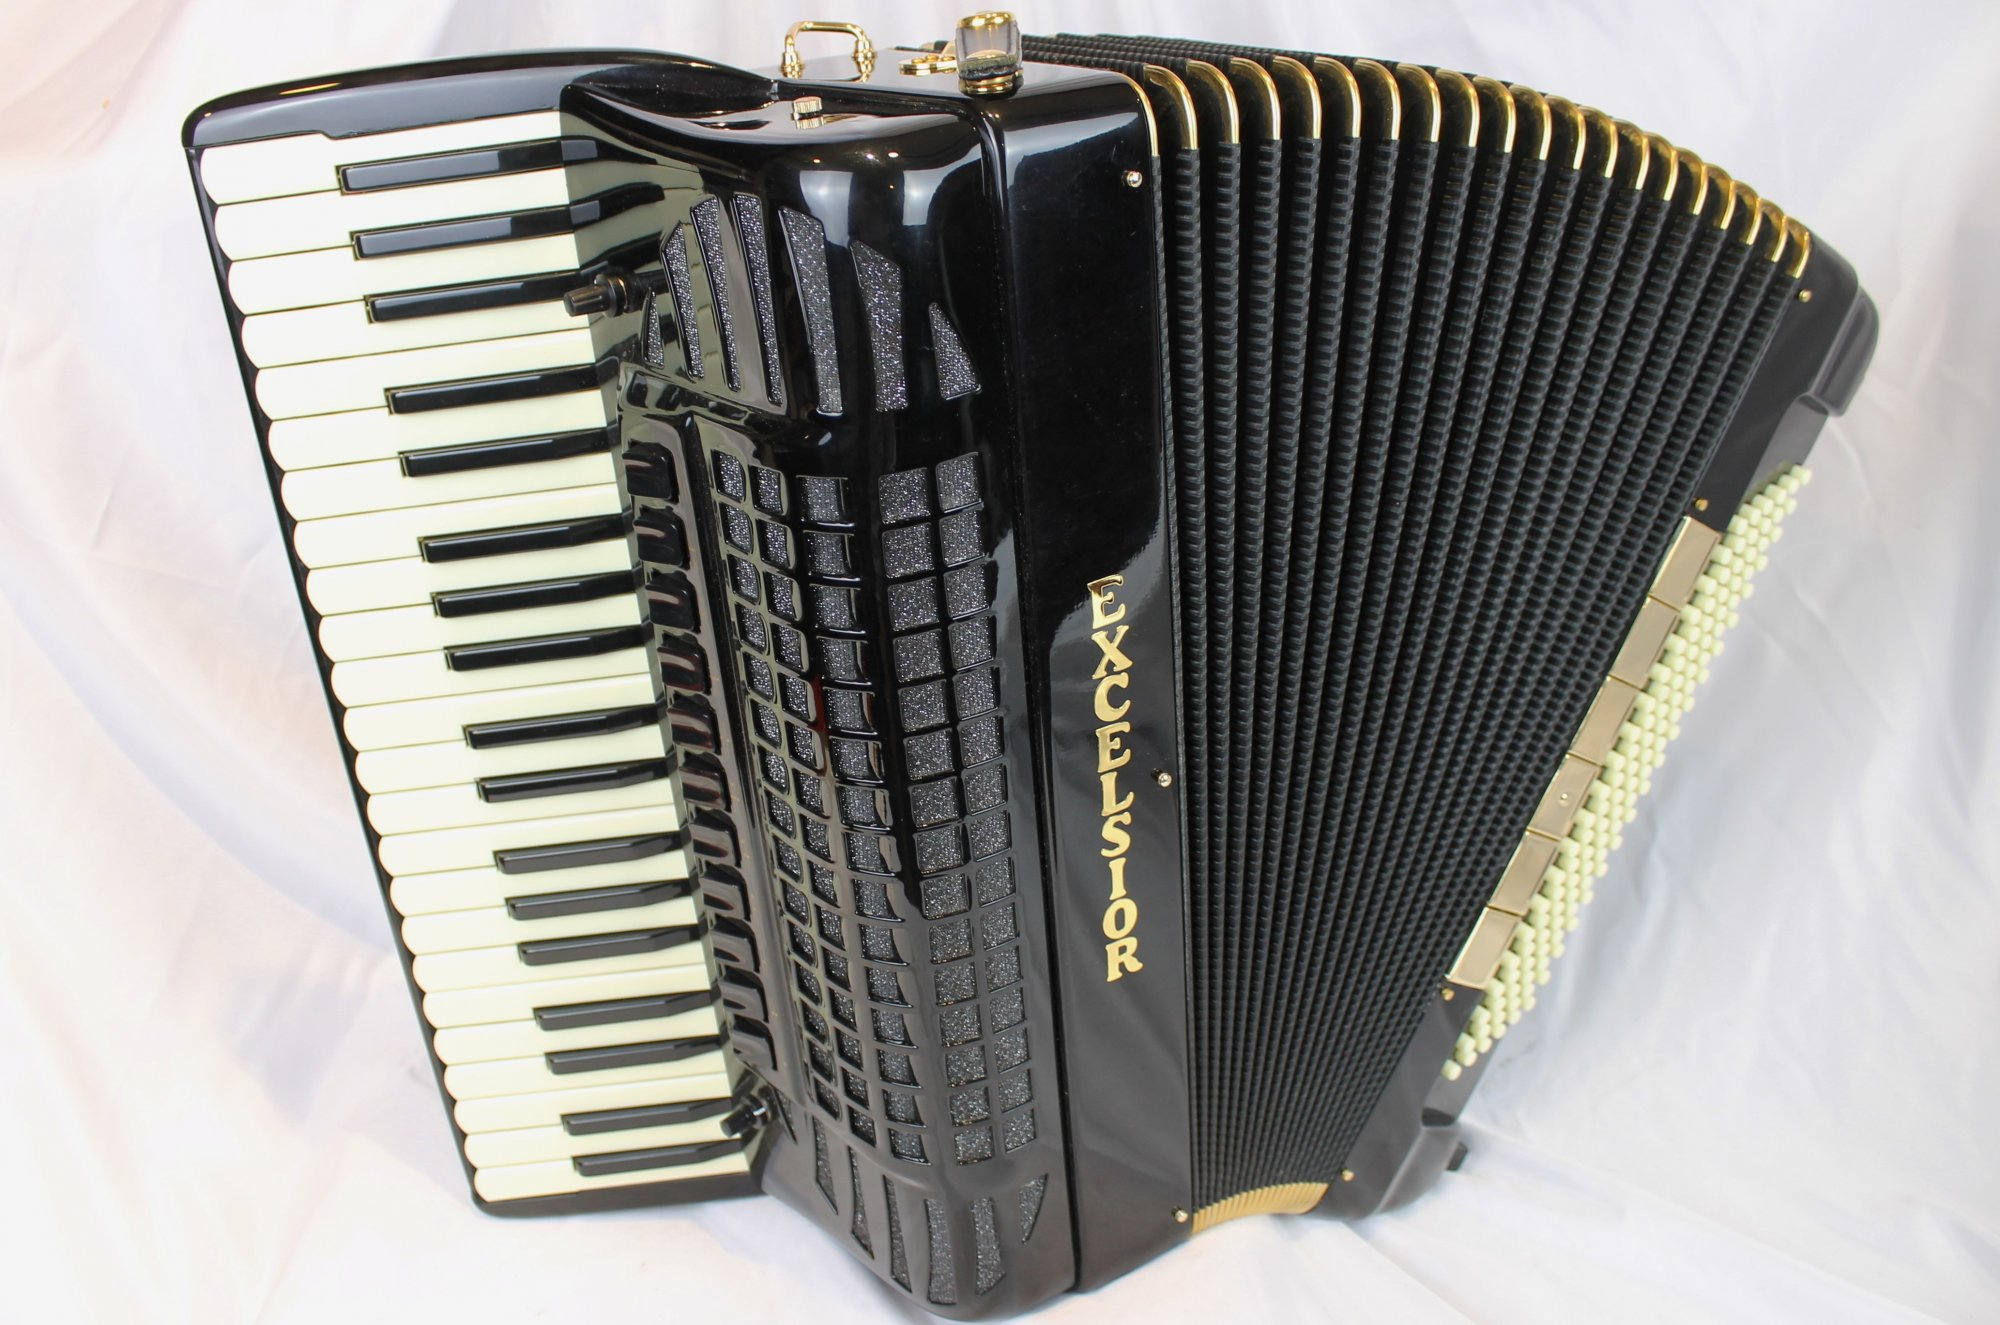 NEW Black Excelsior 940 Gold Piano Accordion LMMH 41 120